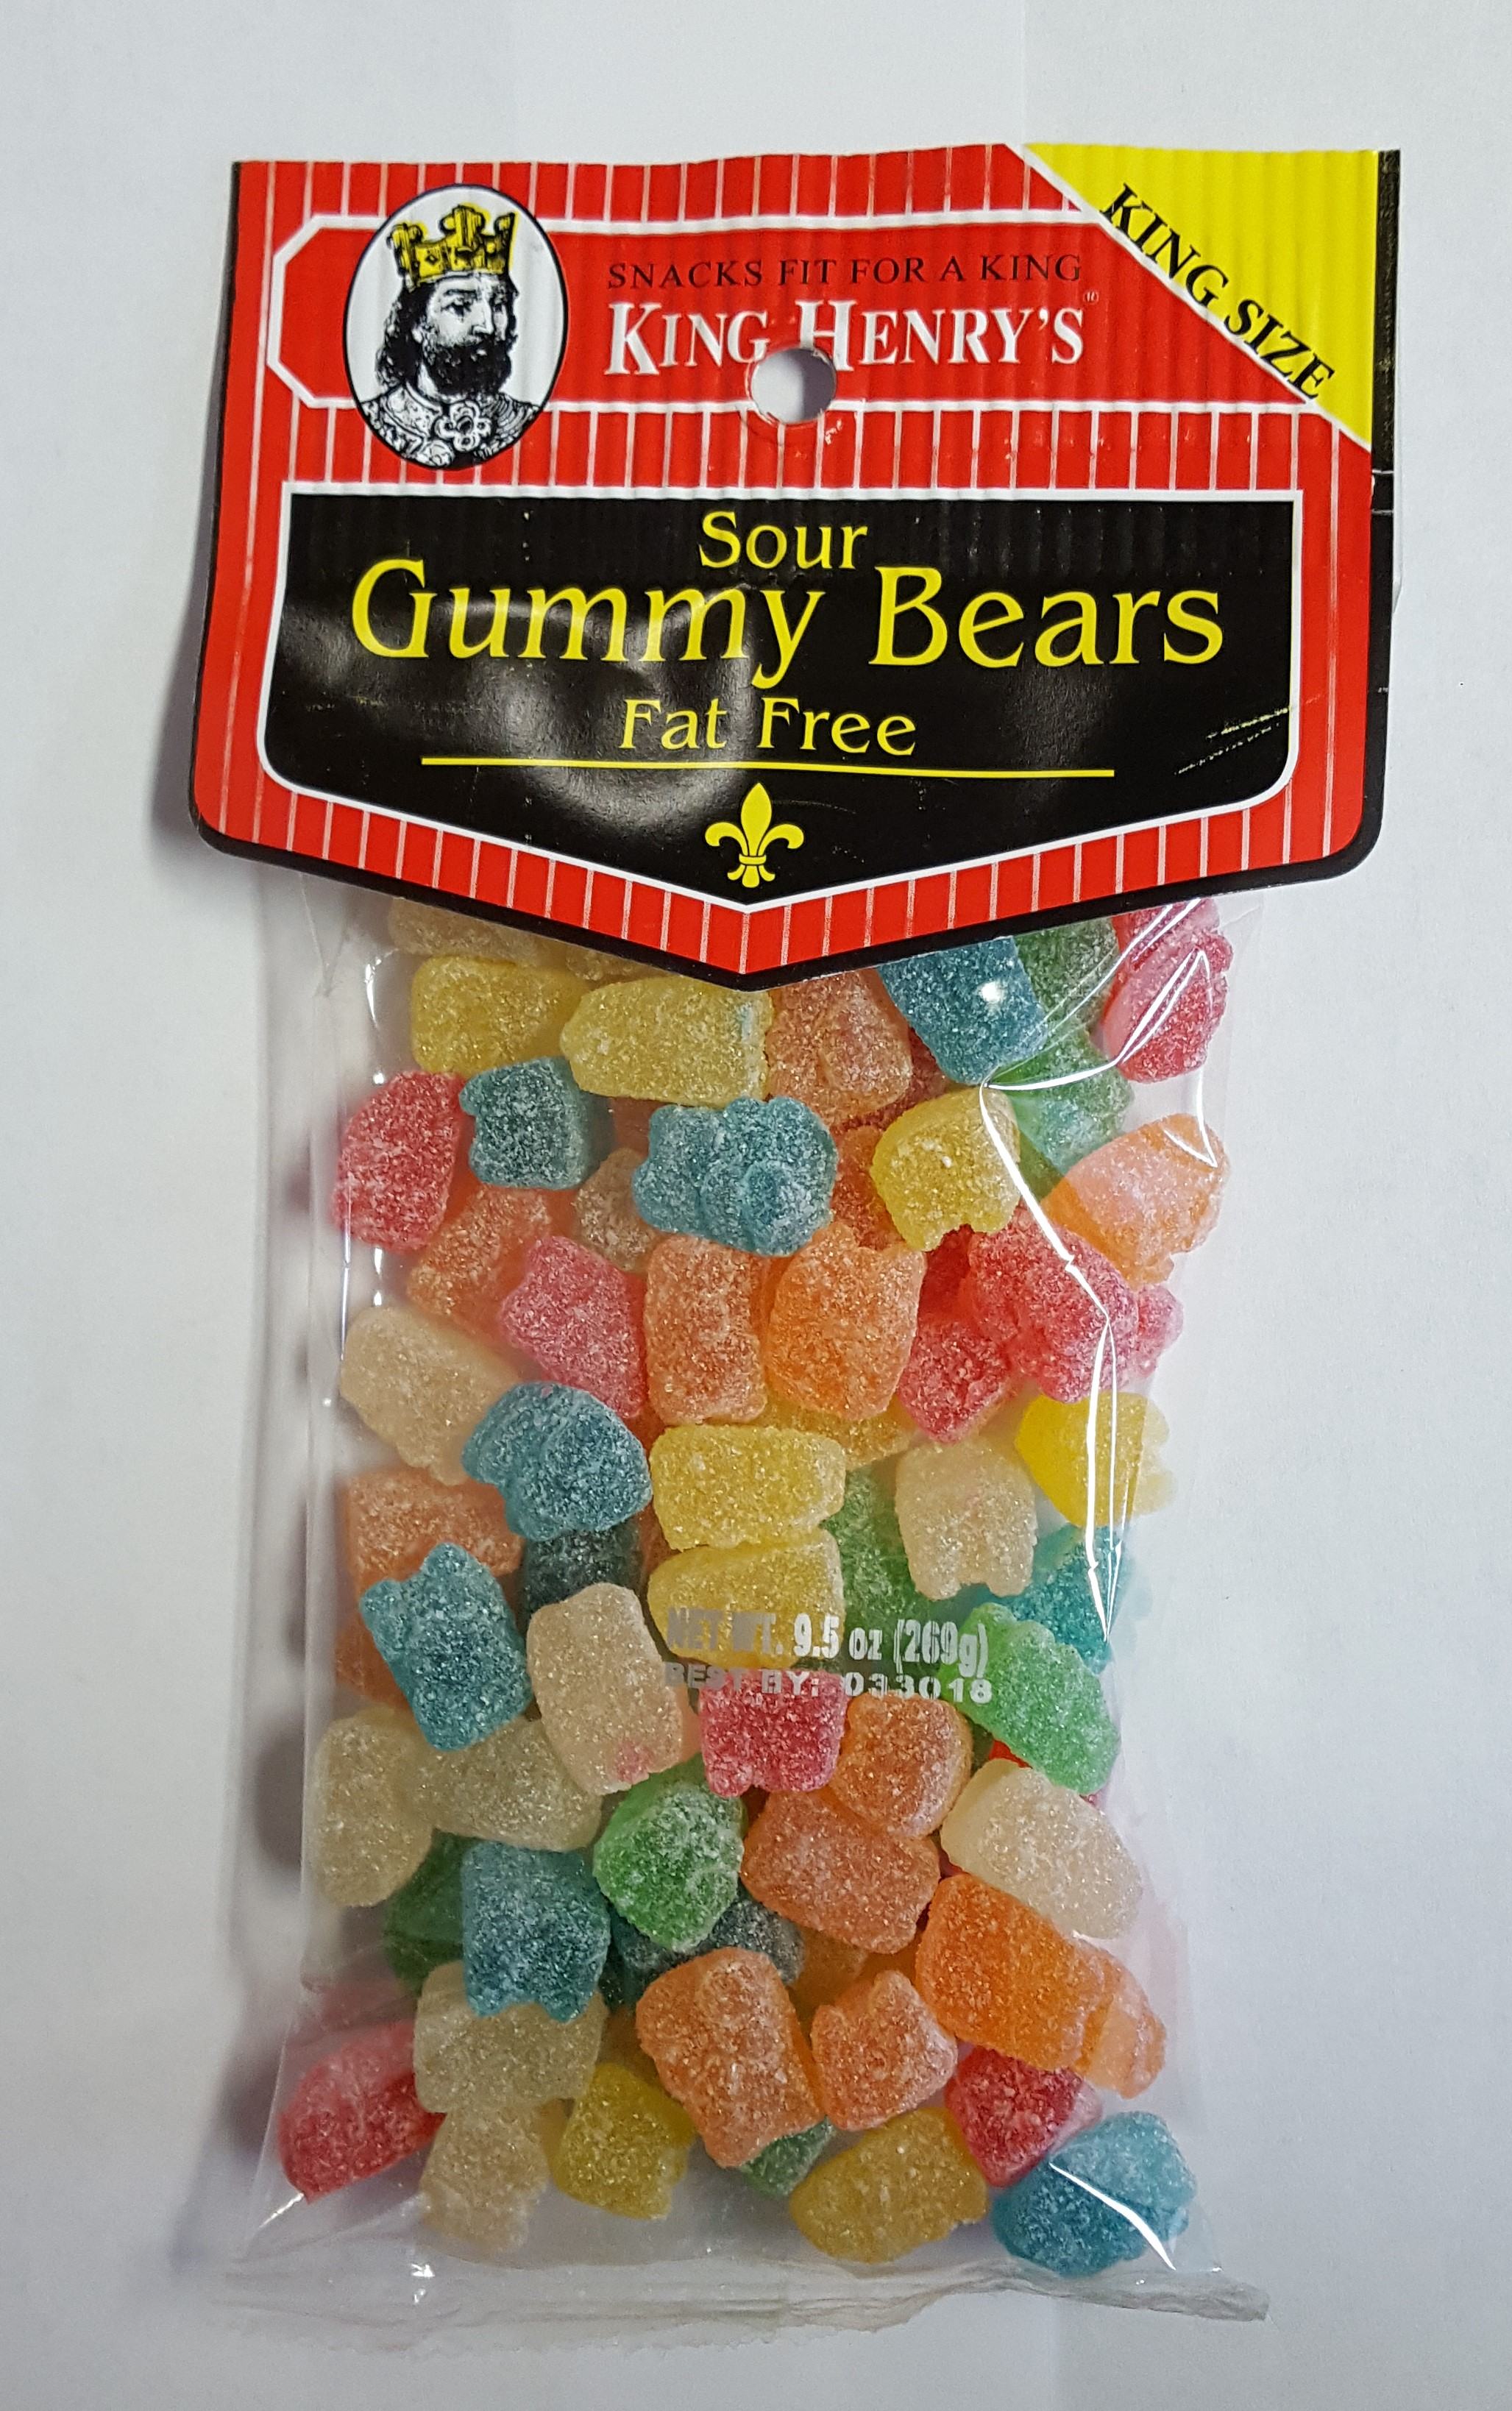 King Henry's Sour Gummy Bears